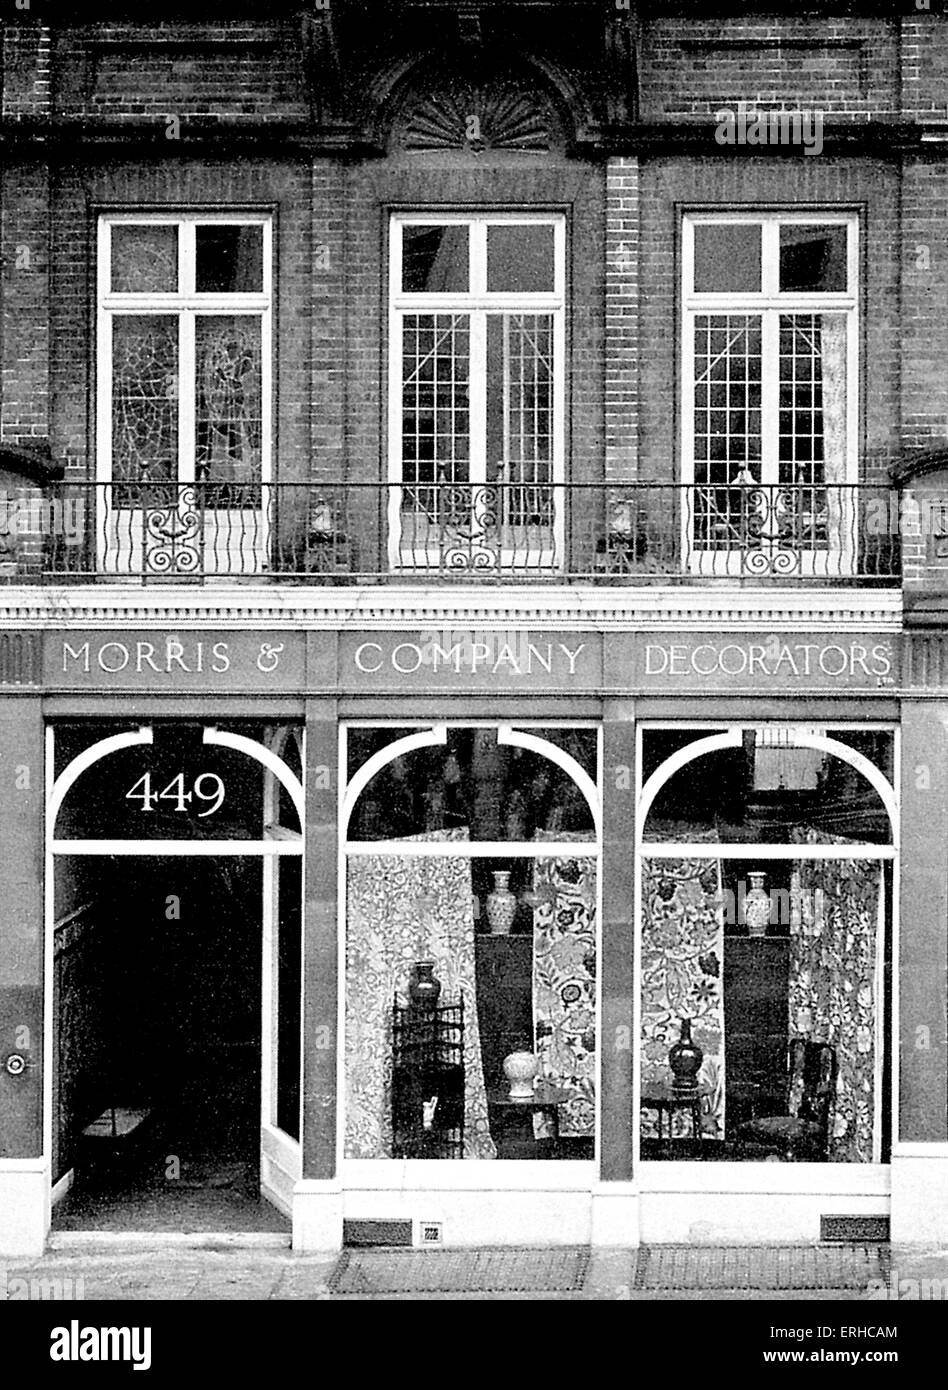 Morris & Co premises at 449, Oxford Street, London, 1879.  Furnishings and decorative arts manufacturers and - Stock Image